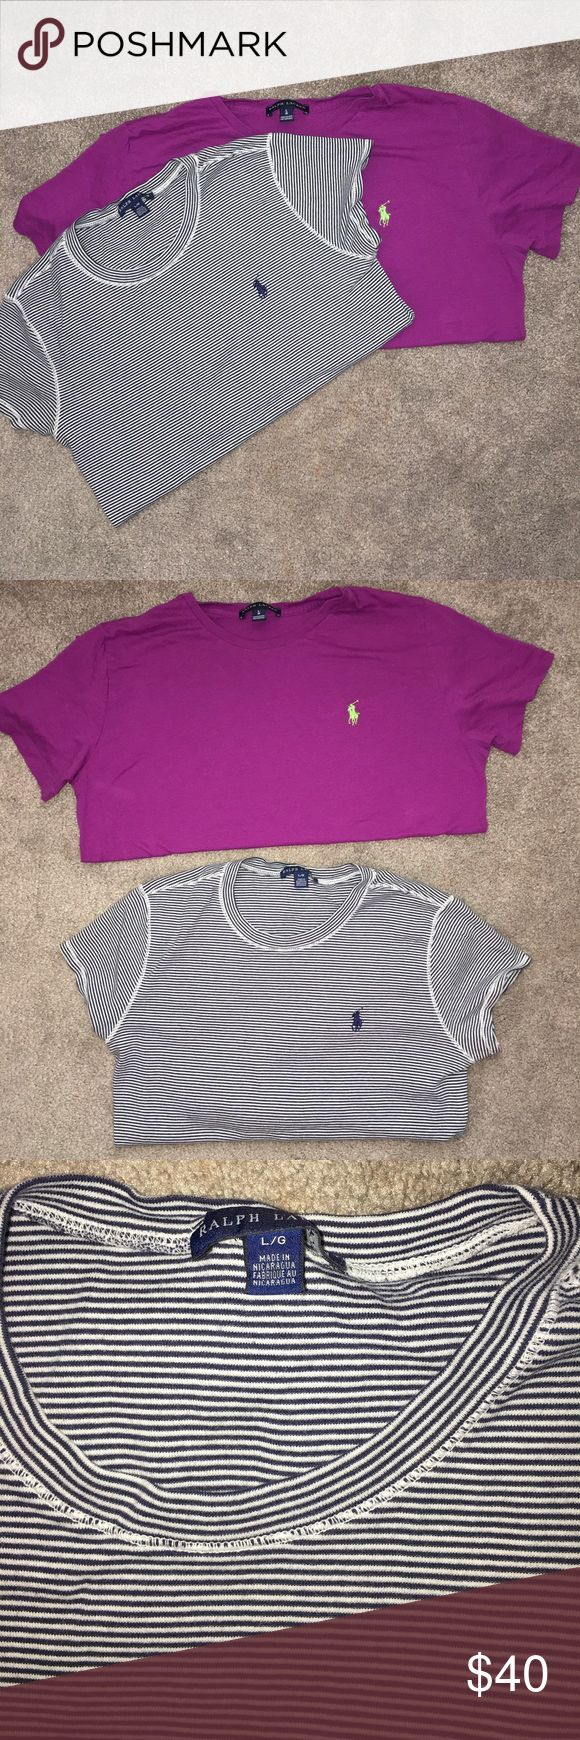 Ralph Lauren Polo t shirts bundle both women's size large. bundle of both shirts if you just want one let me know. Polo by Ralph Lauren Tops Tees - Short Sleeve